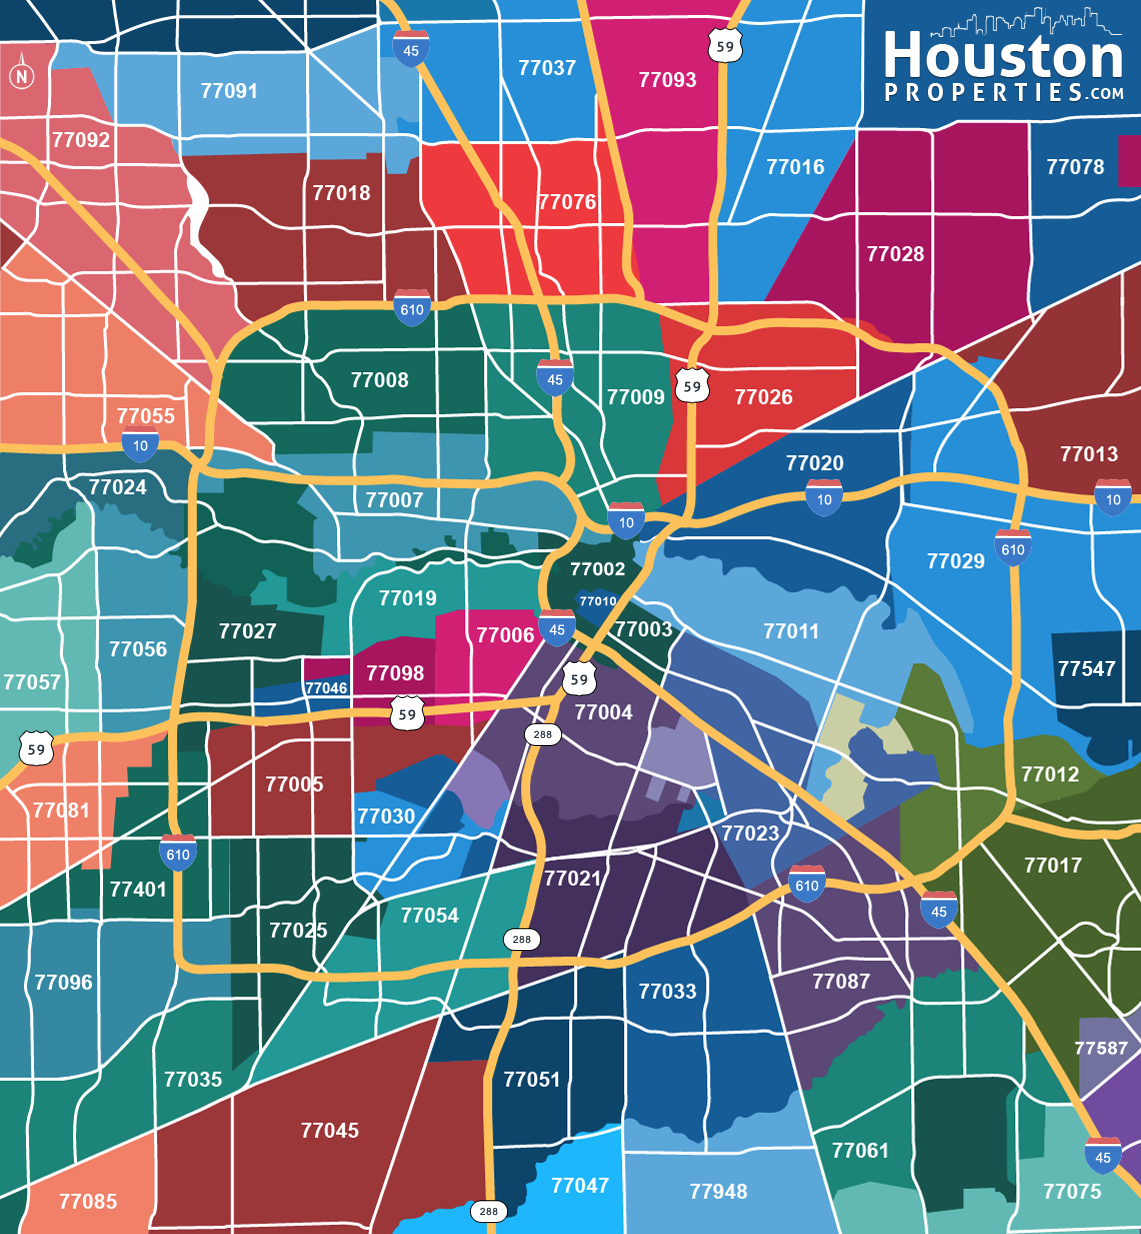 Houston Map With Zip Code 2020 Update: Houston Neighborhoods (With images) | Houston map